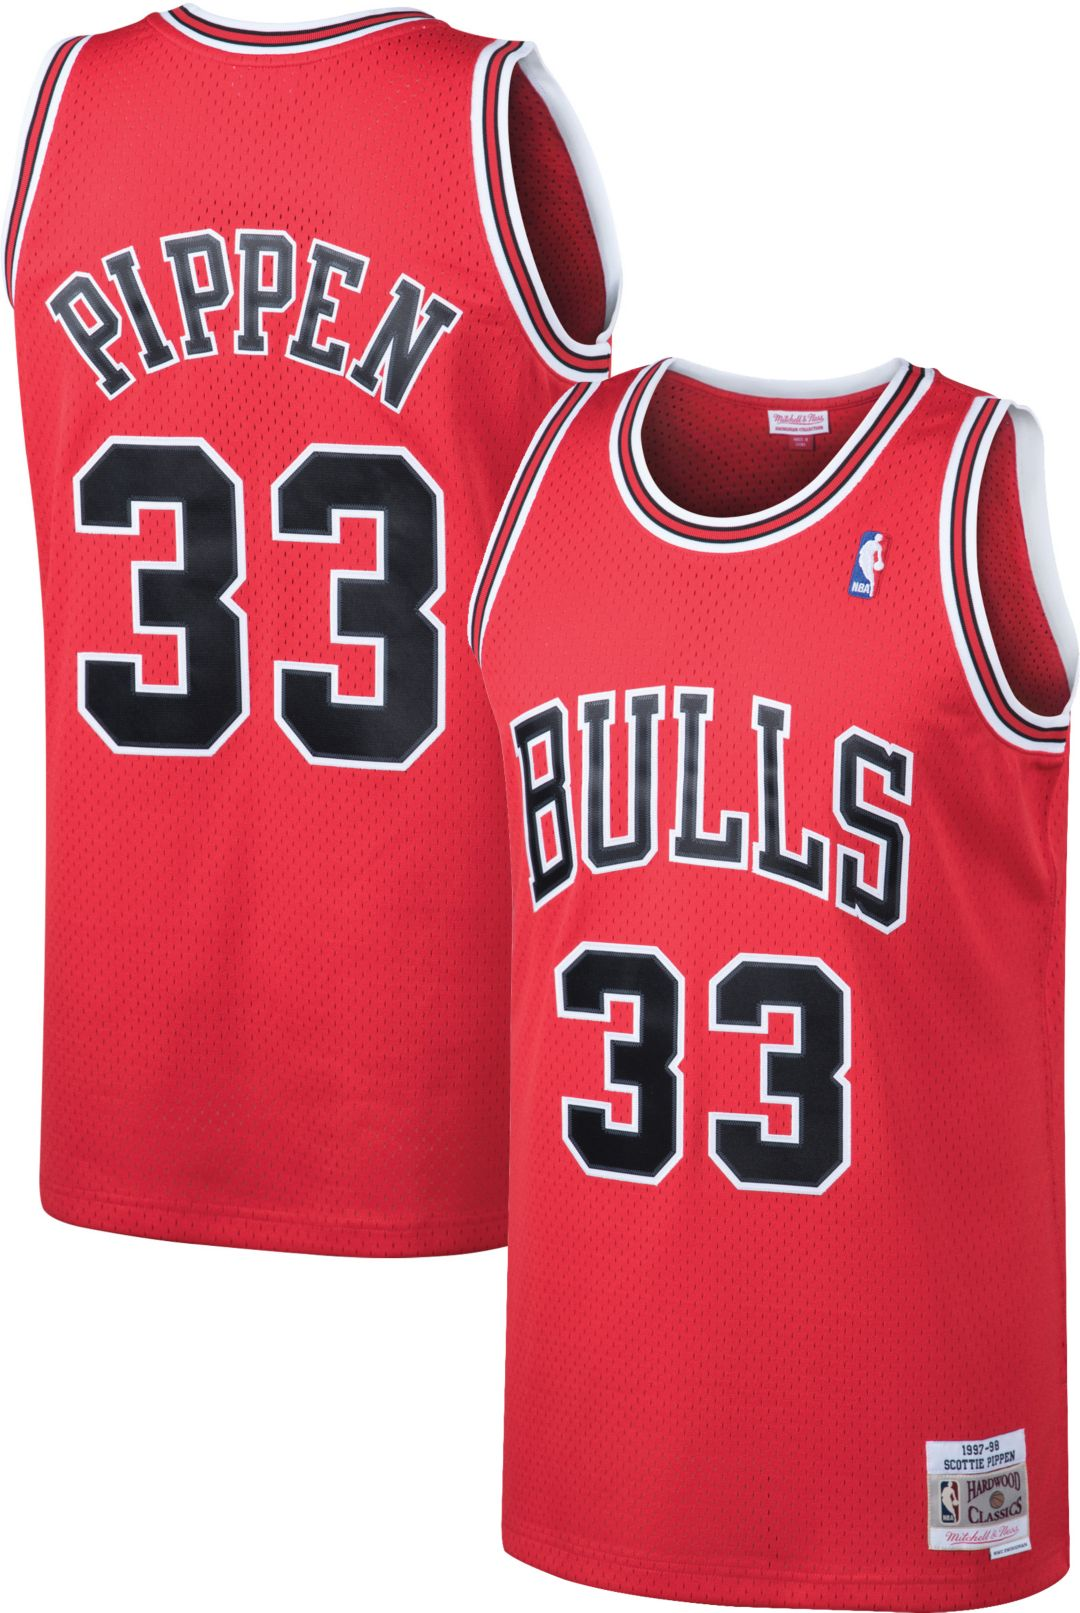 2e6a0d8512f Mitchell   Ness Men s Chicago Bulls Scottie Pippen  33 Swingman ...